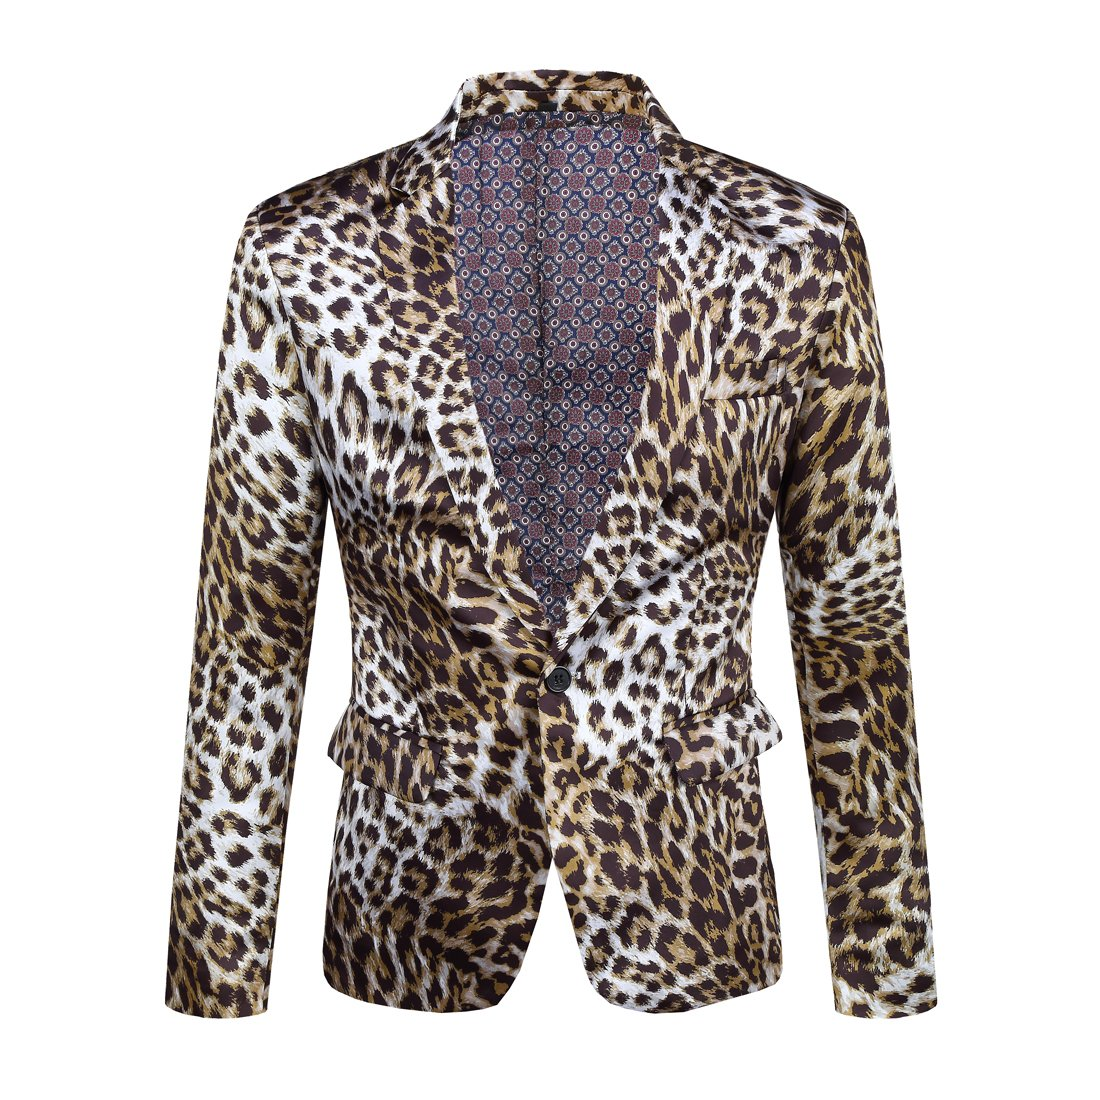 CARFFIV Mens Fashion Colorated Floral Print Suit Jacket Casual Blazer (Leopard, XS/36R)